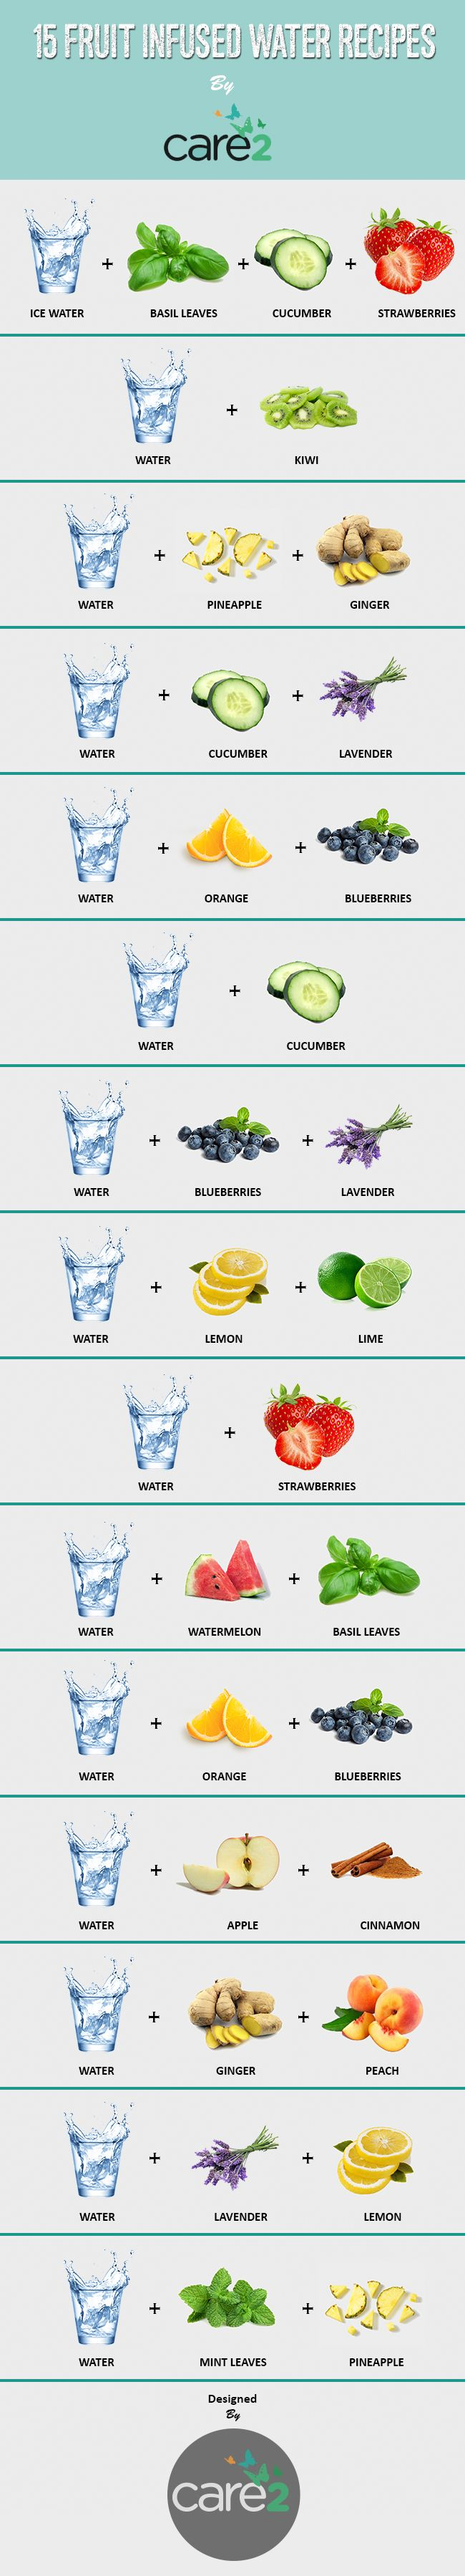 15 Amazing Fruit Infused Water Recipes (Infographic) | Care2 Healthy Living